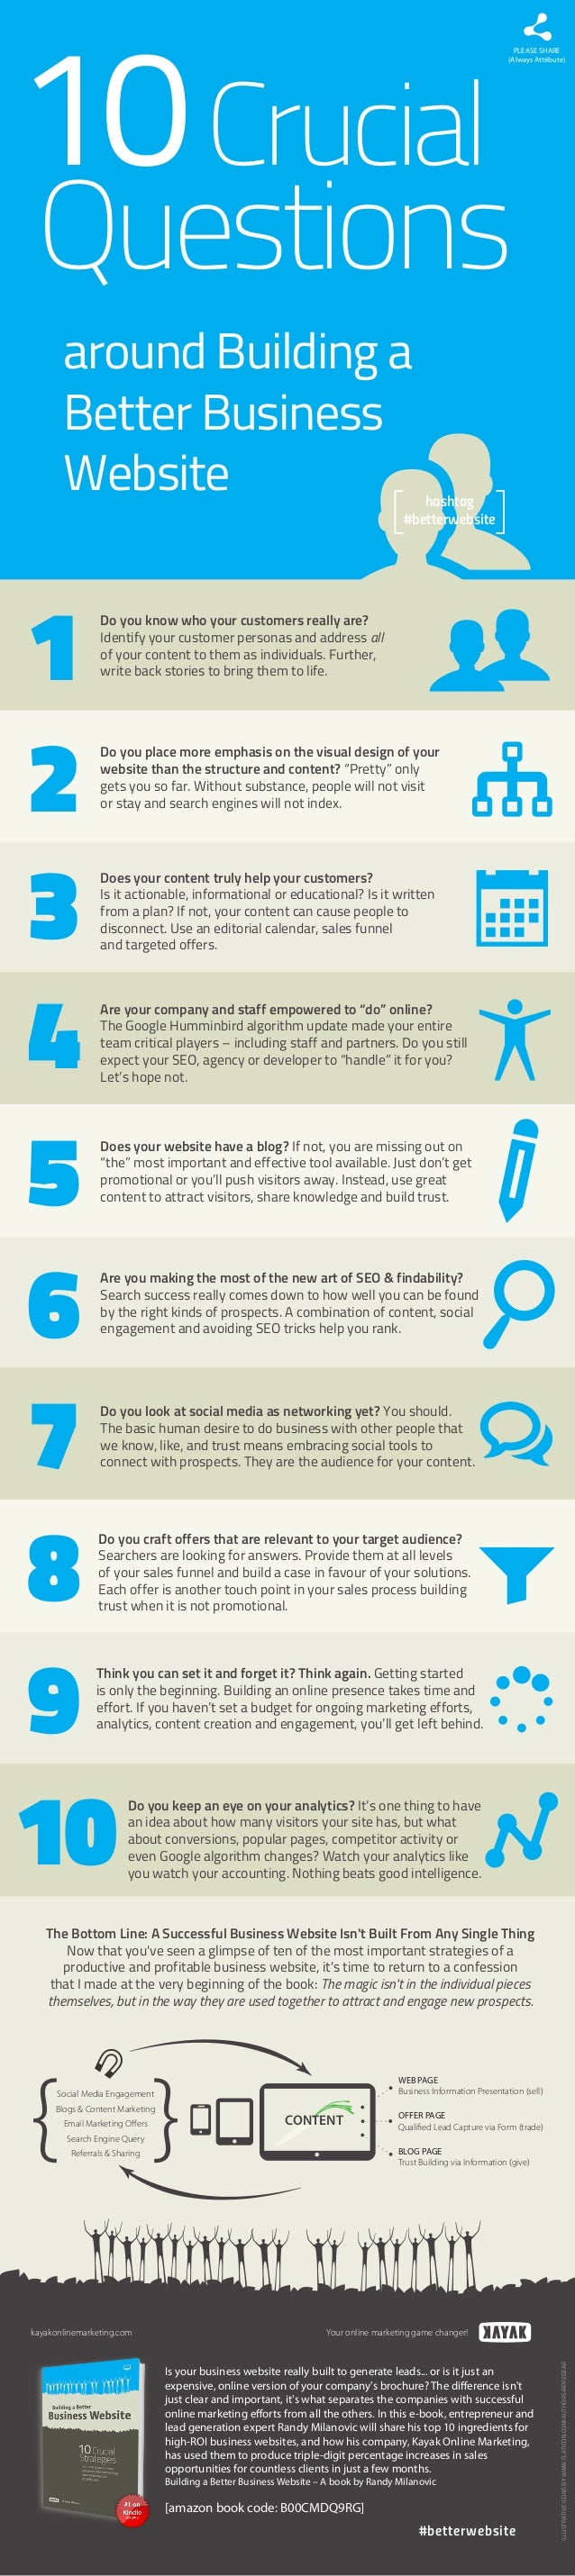 10 Crucial  PLEASE SHARE (Always Attribute)  Questions around Building a Better Business Website [  ]  hashtag #betterwebs...